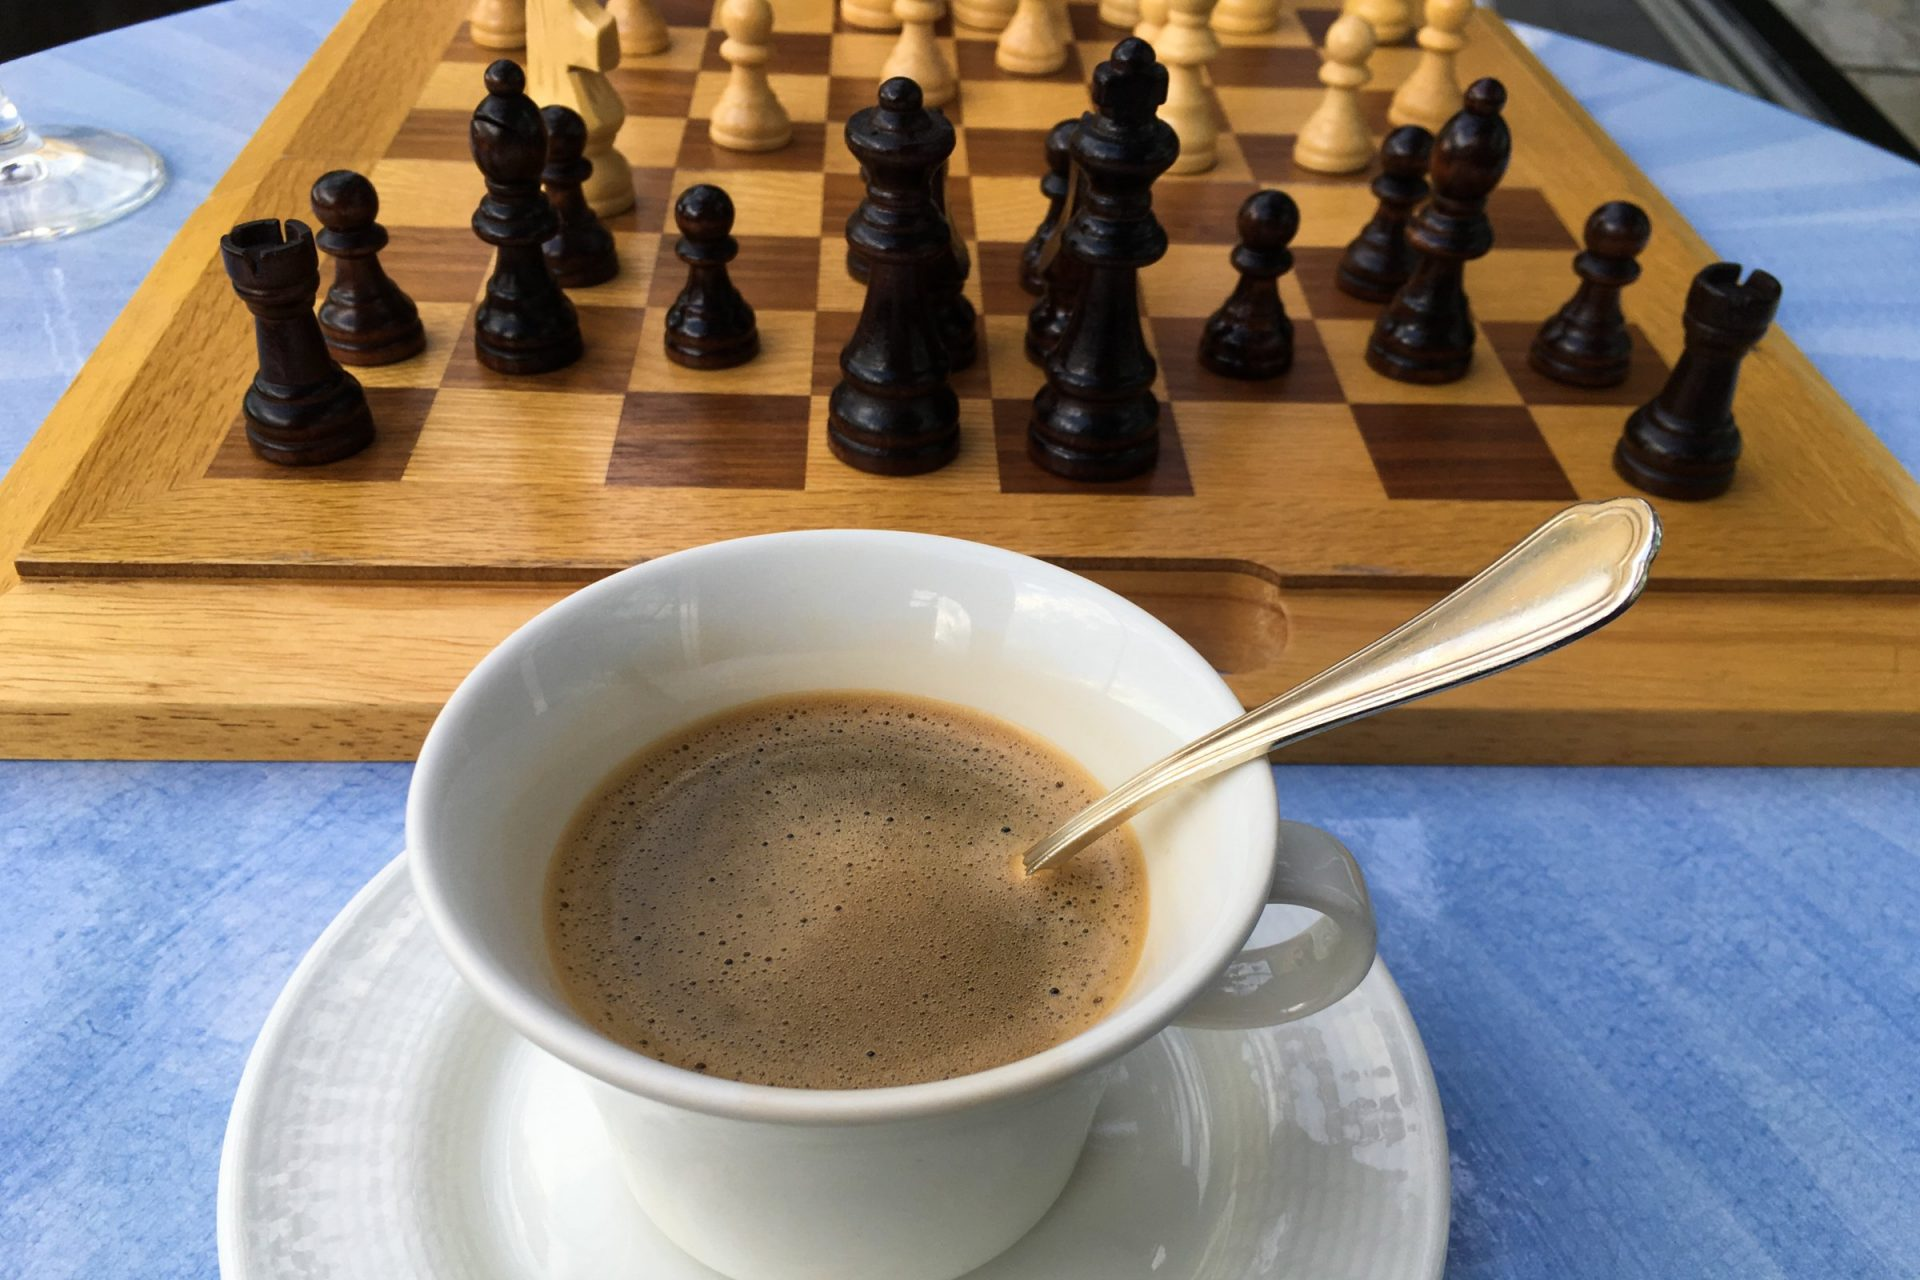 Cup Of Coffee Next To Chessboard On Table